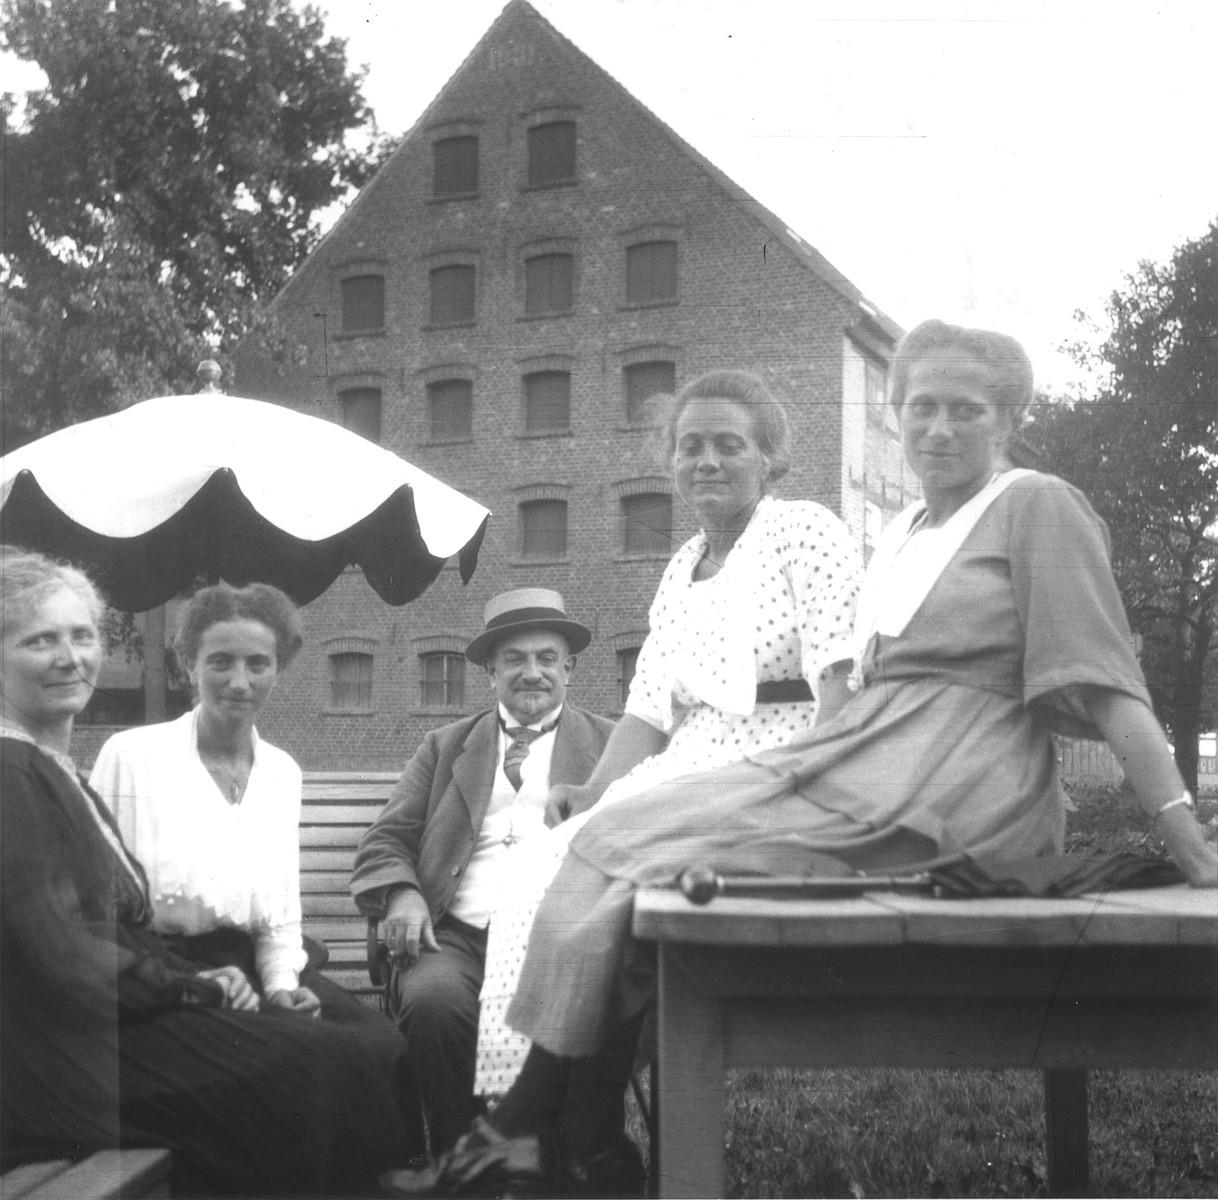 Members of the Gottschalk family pose outside.  Pictured from left to right are: Bertha, Gertrud, Hugo, Nanny and Kaethe Gottschalk.